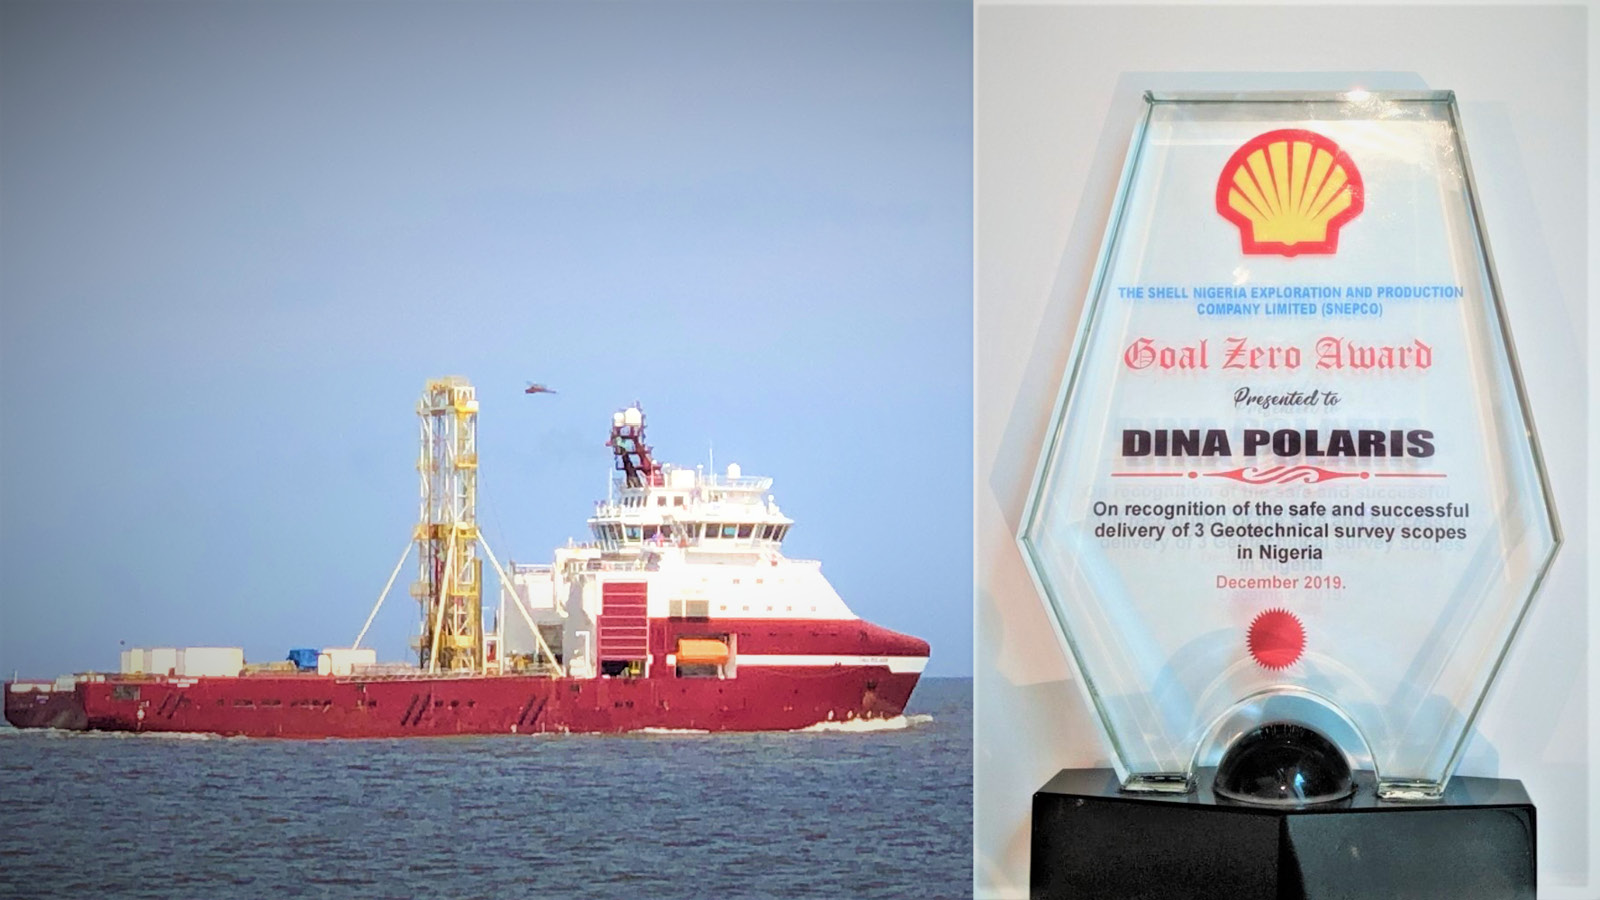 Geoquip Marine honored with Goal Zero award by Shell for zero LTI